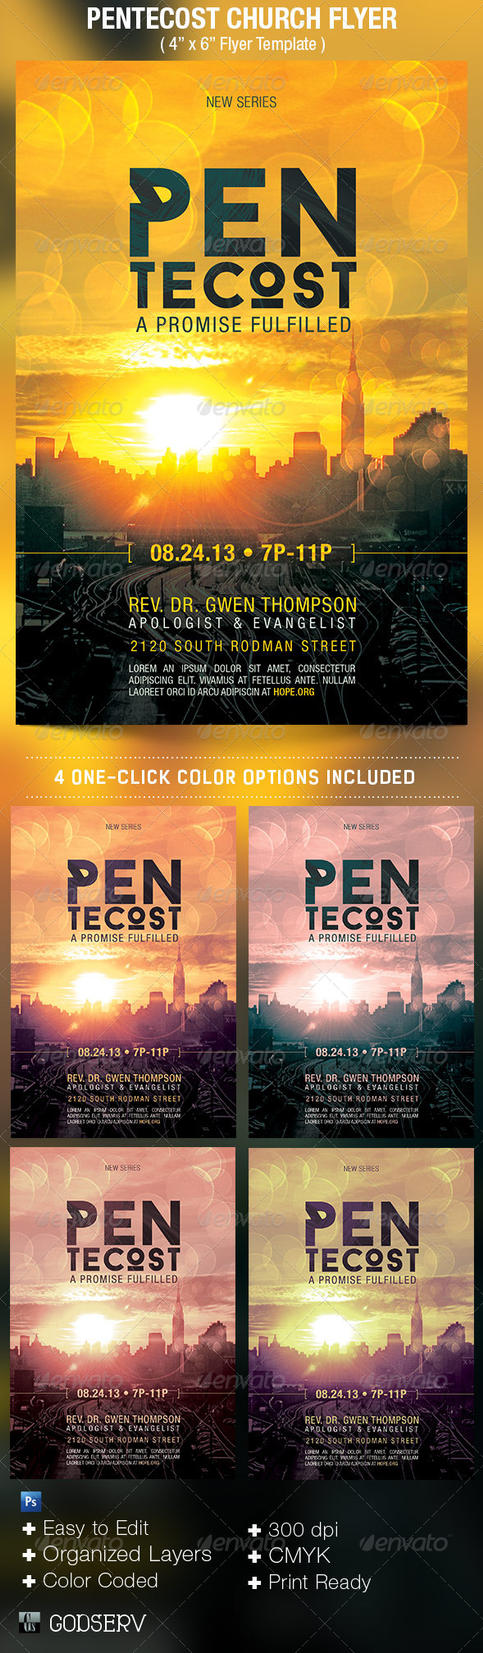 pentecost church flyer template by godserv on deviantart. Black Bedroom Furniture Sets. Home Design Ideas